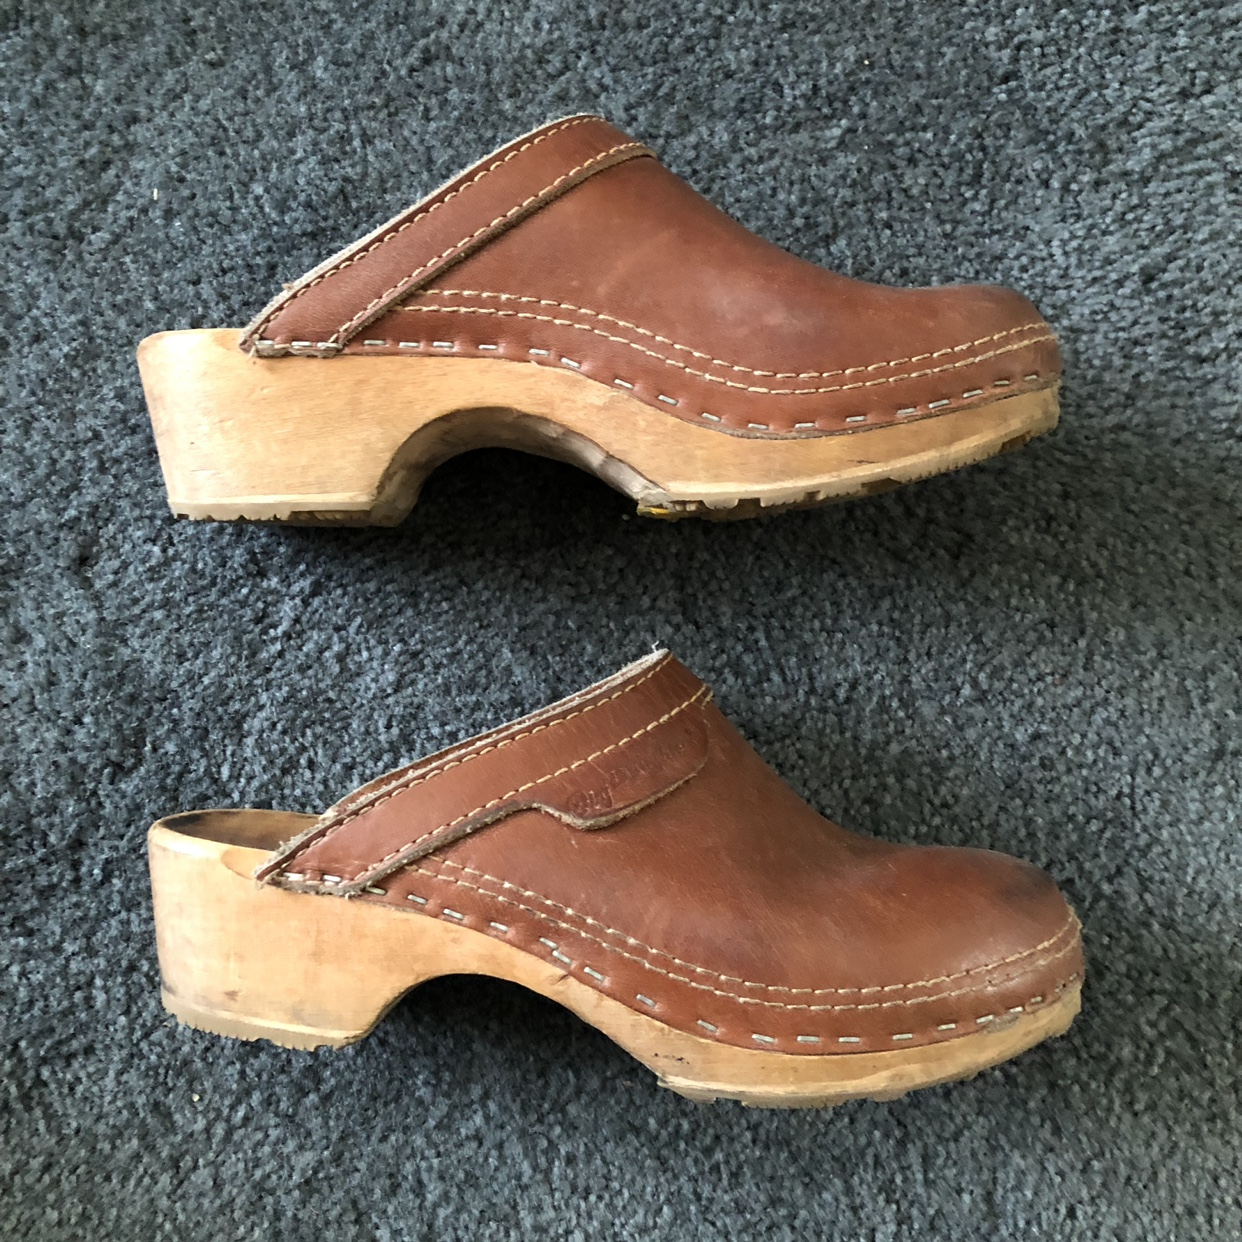 Vintage clogs from the 70s. The brand